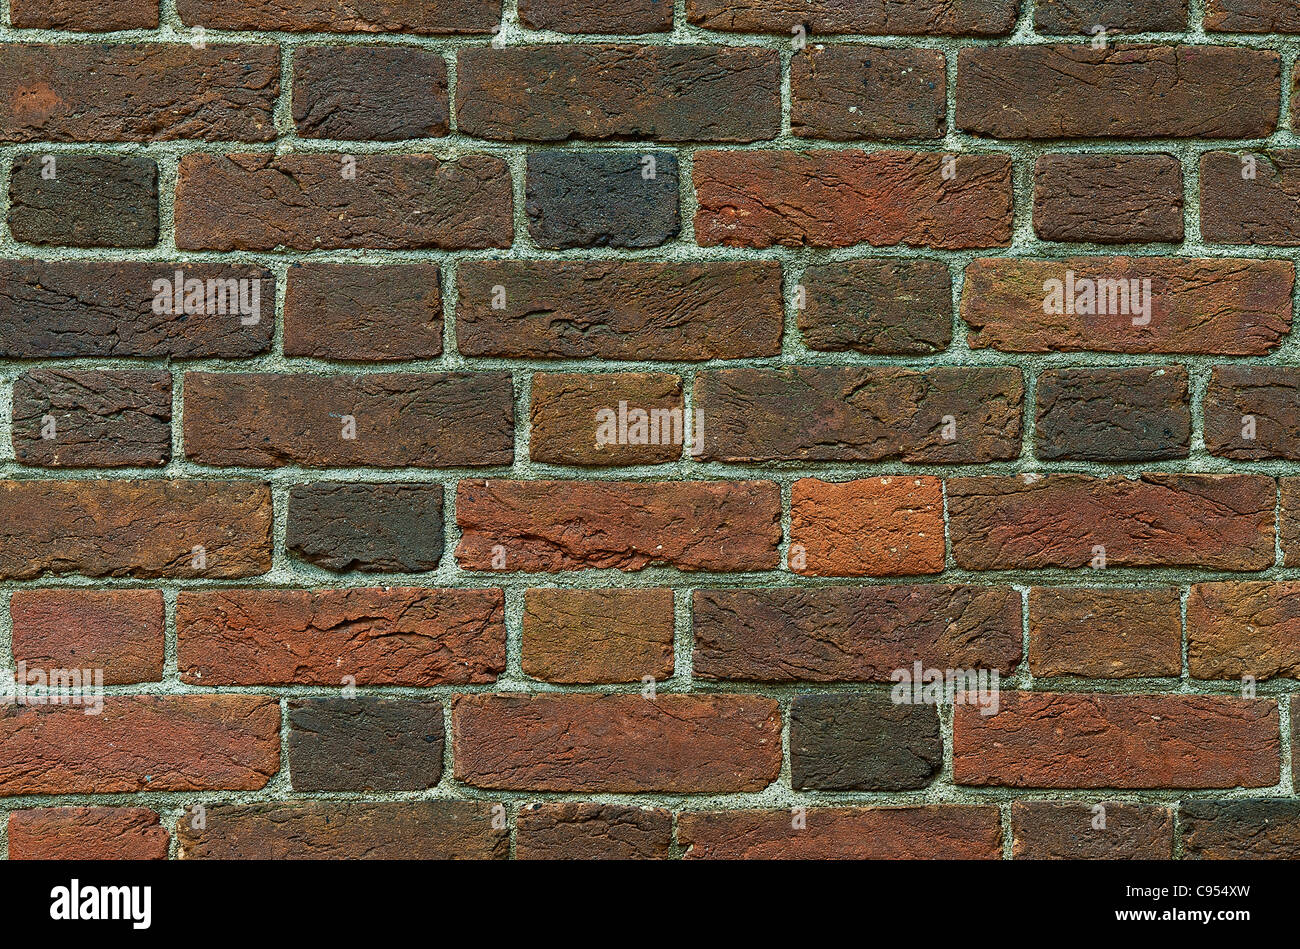 Un mur de briques. Photo Stock